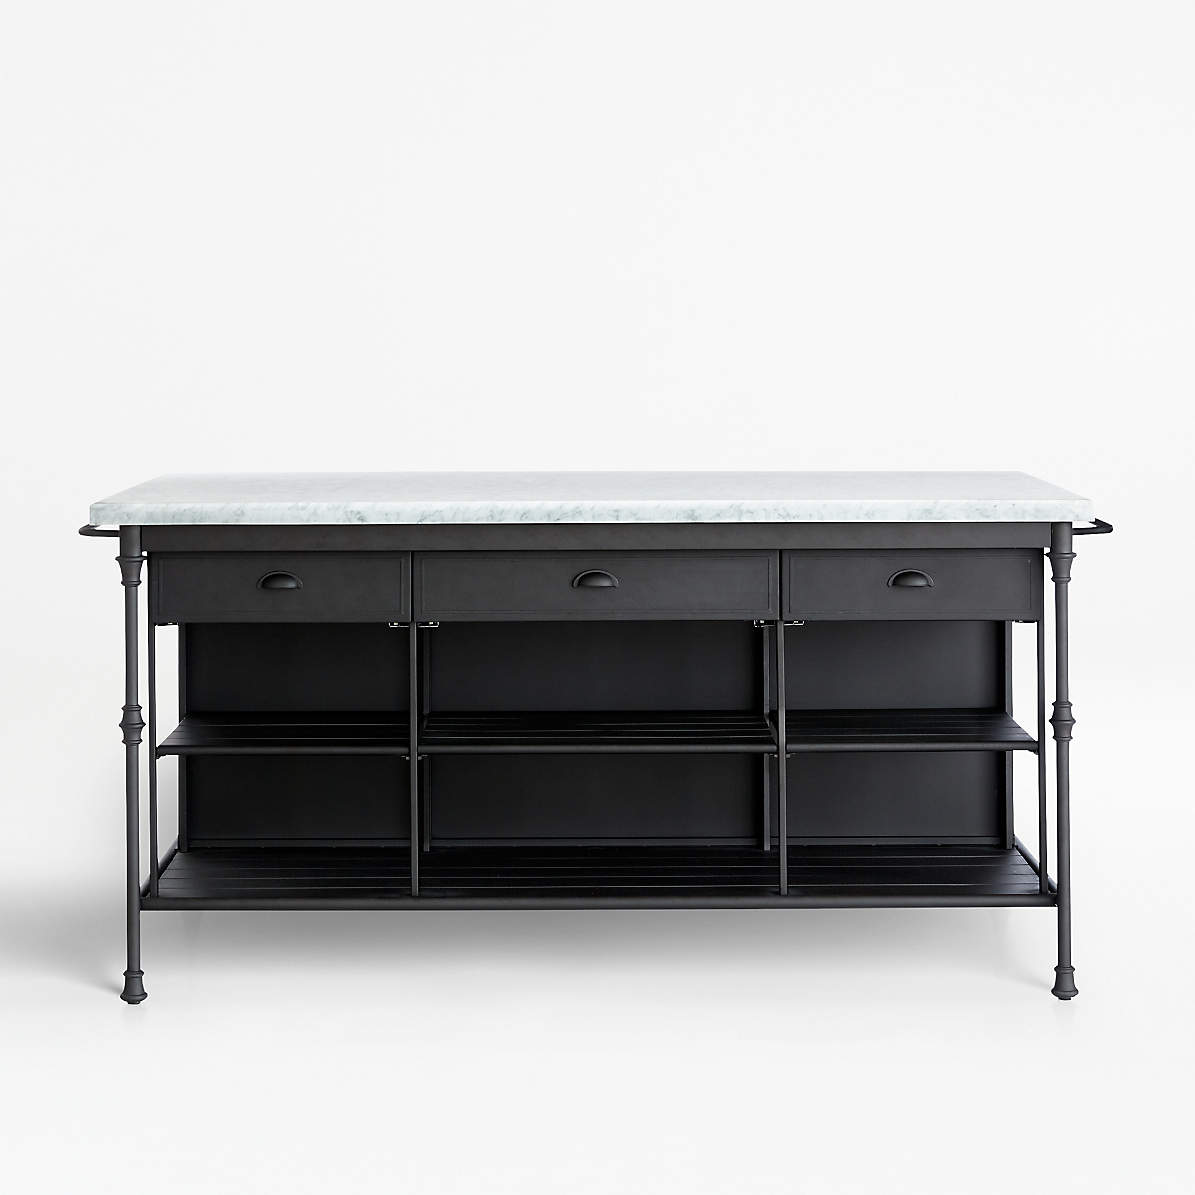 French Kitchen 72 Large Kitchen Island Reviews Crate And Barrel